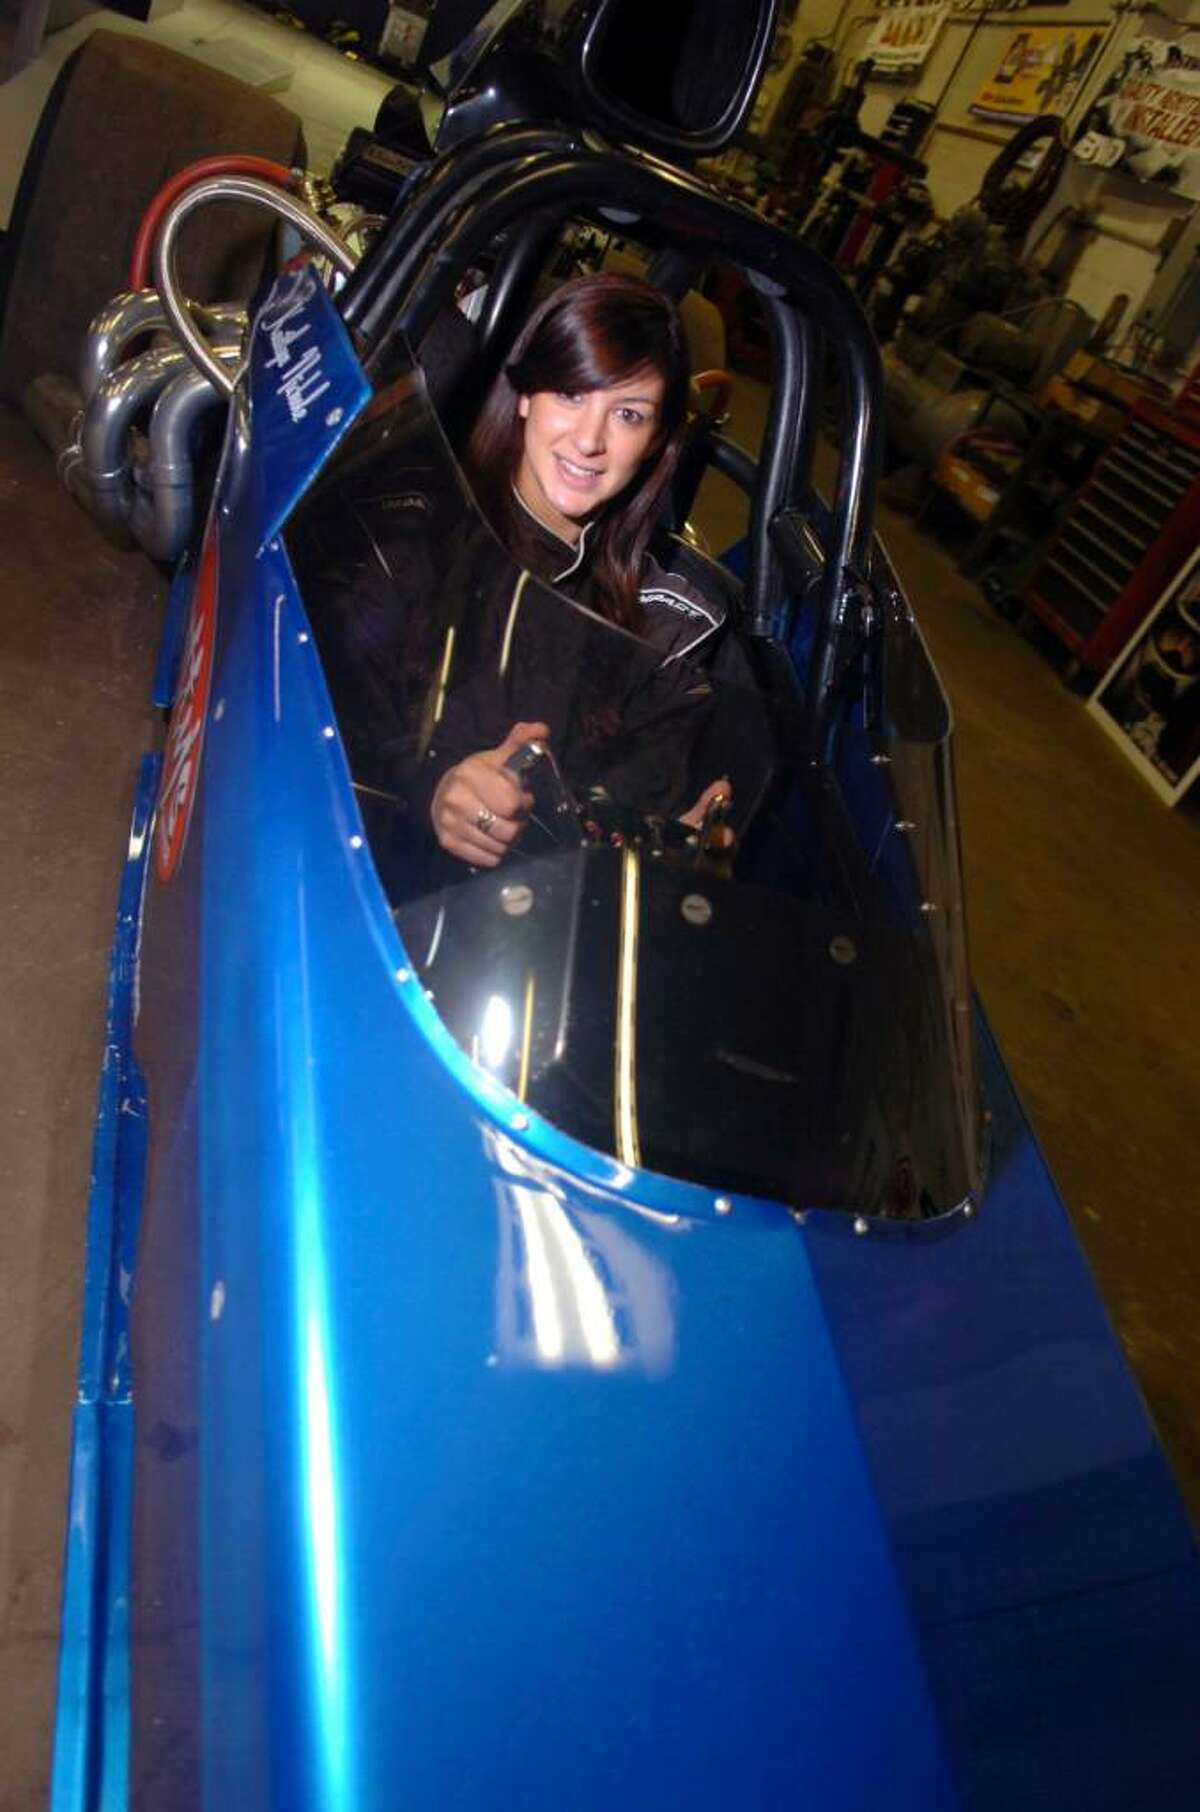 Kaitlyn Sobeski, a 24-year-old Greenwich High School graduate and former cheerleader, who is now learning to race a rear-engine dragster in Florida. She sits in the dragster, on January 24, 2010, in her father, Scotty Sobeski's, garage. Her first race will be in March.